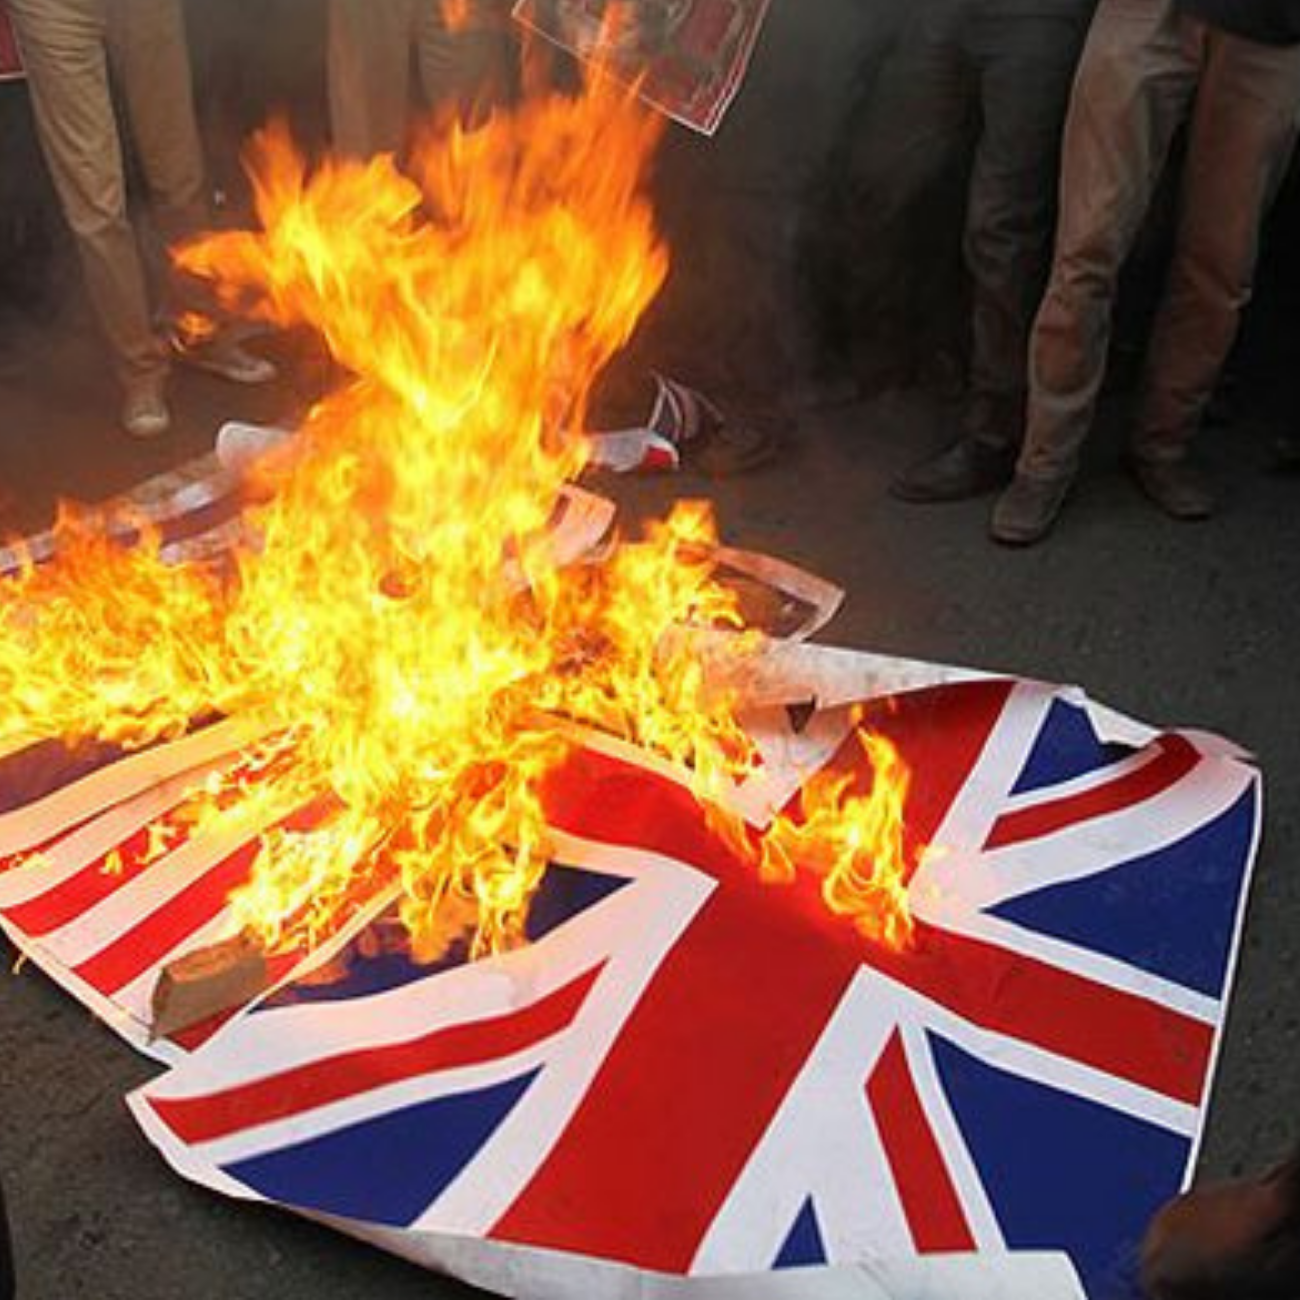 Brexit, what we lost in the fire